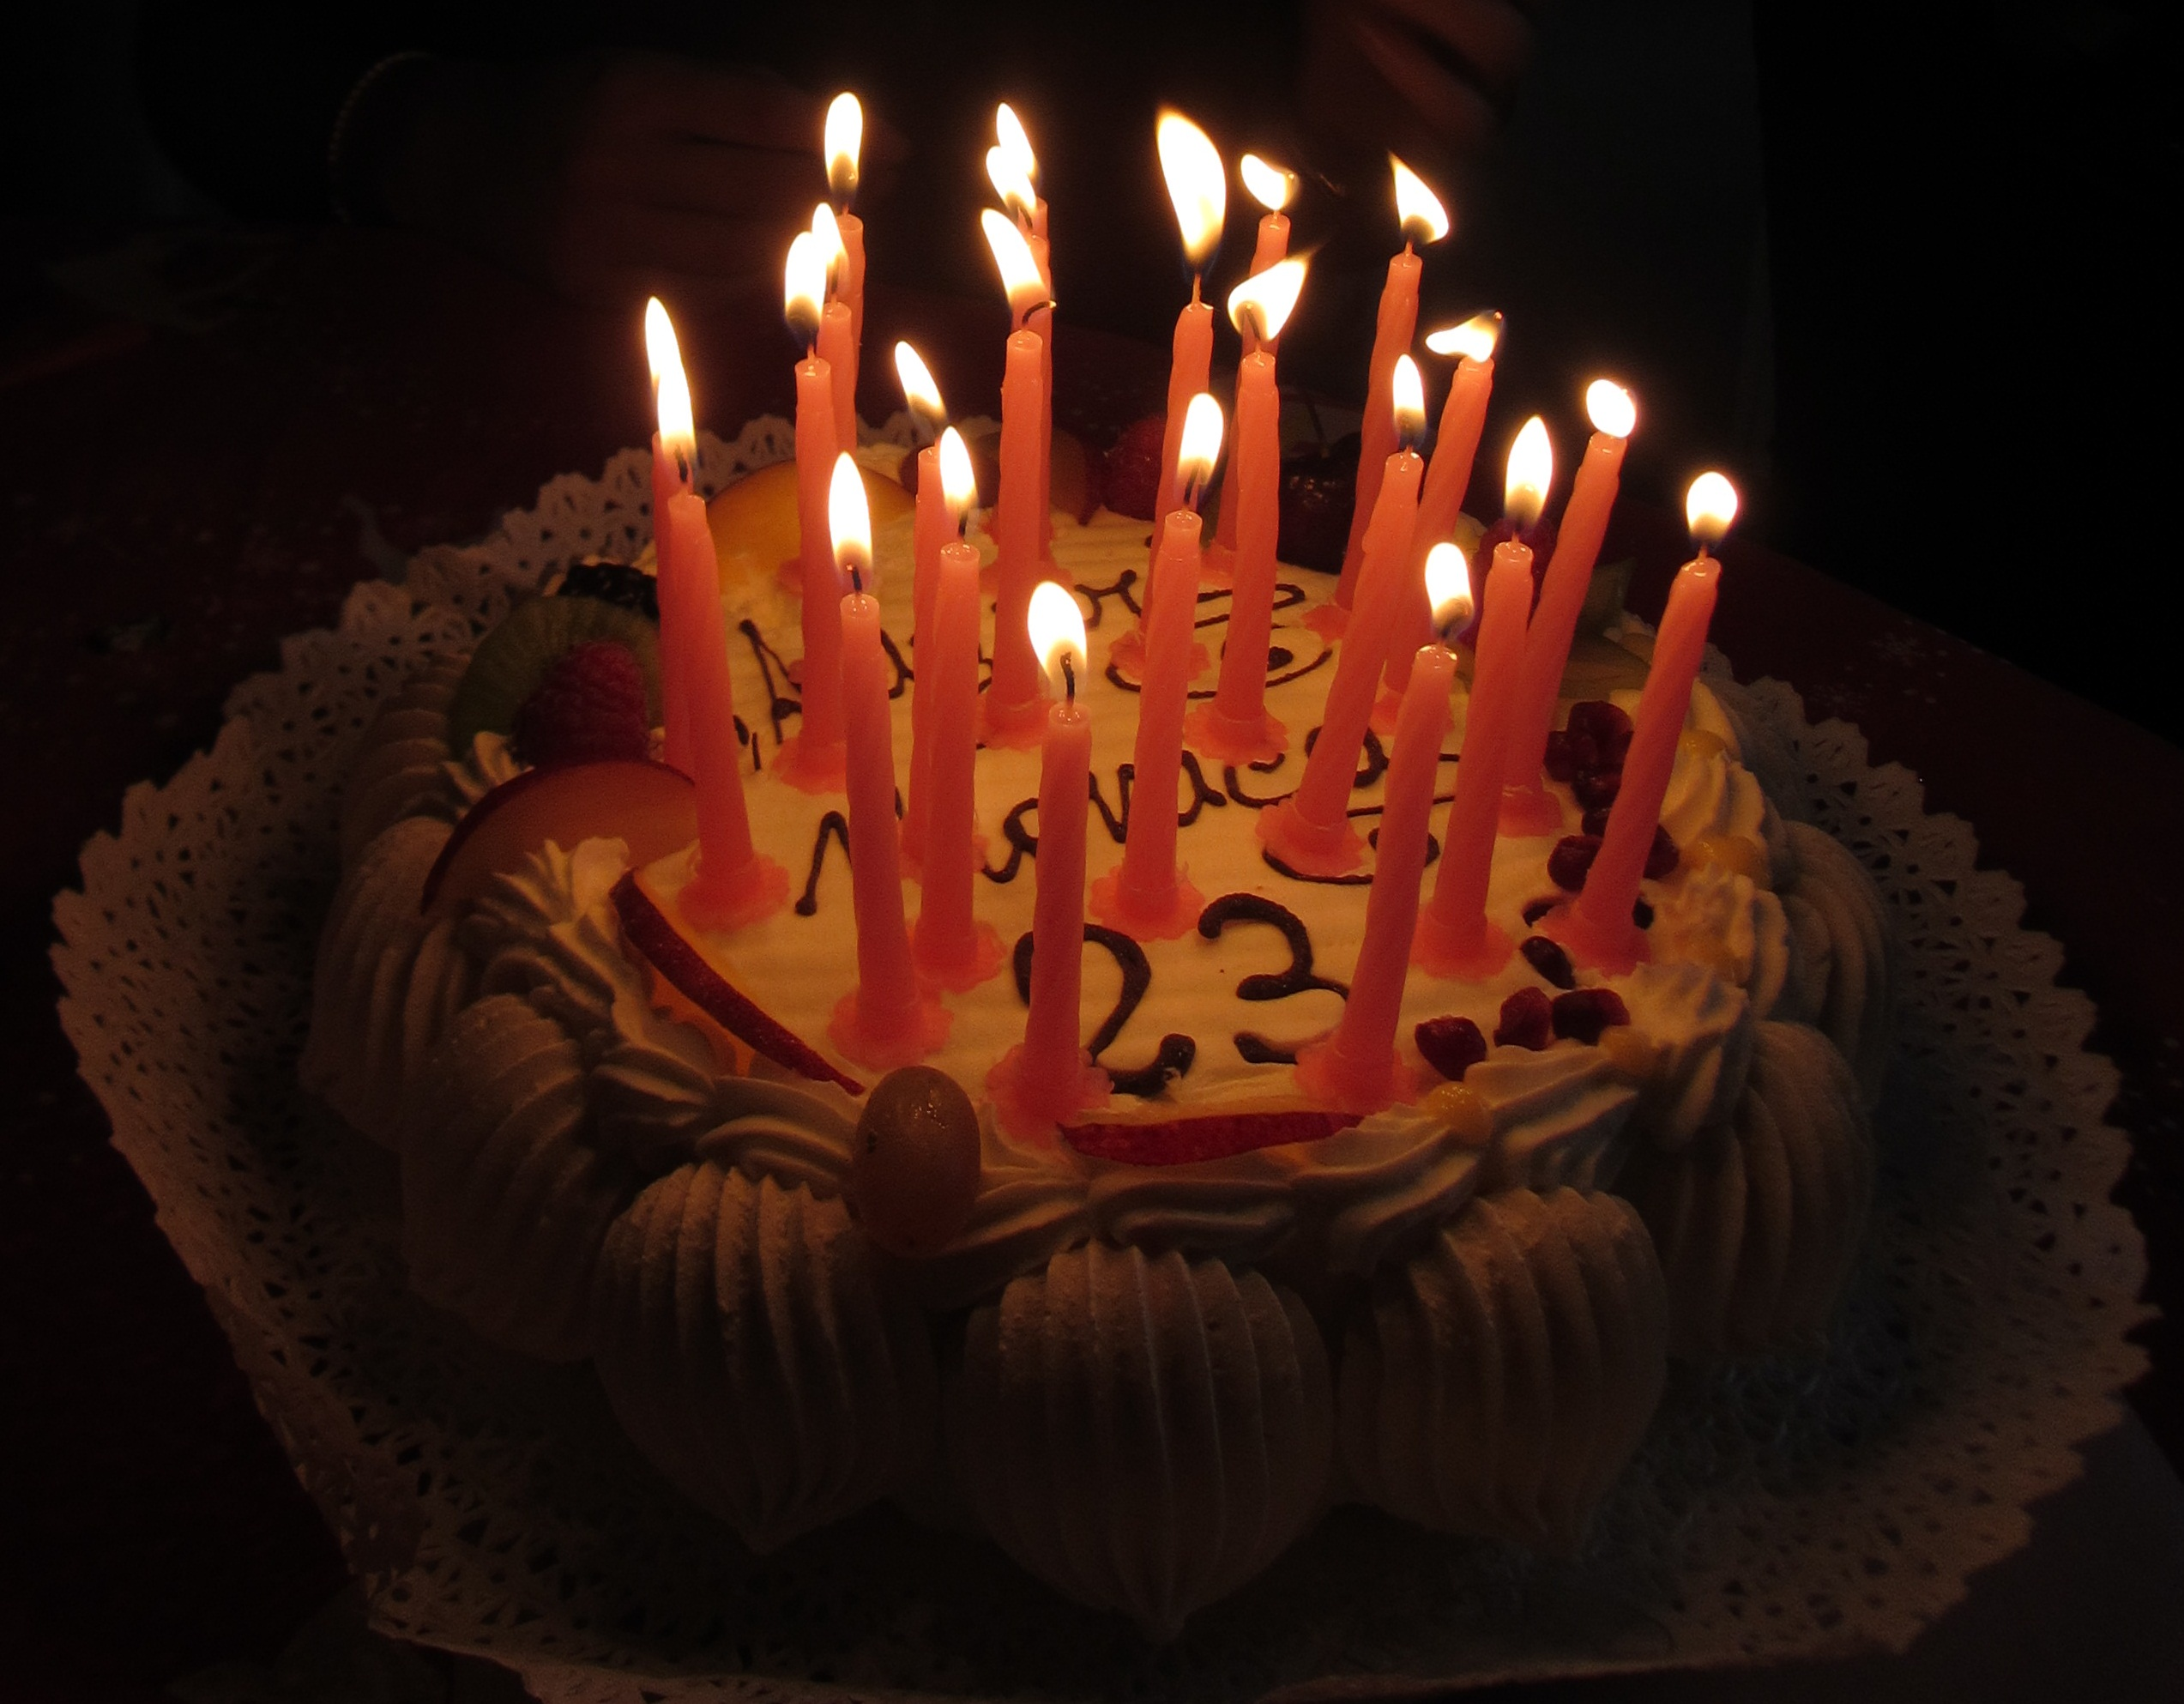 Fileitaly Birthday Cake With Candles 4g Wikimedia Commons